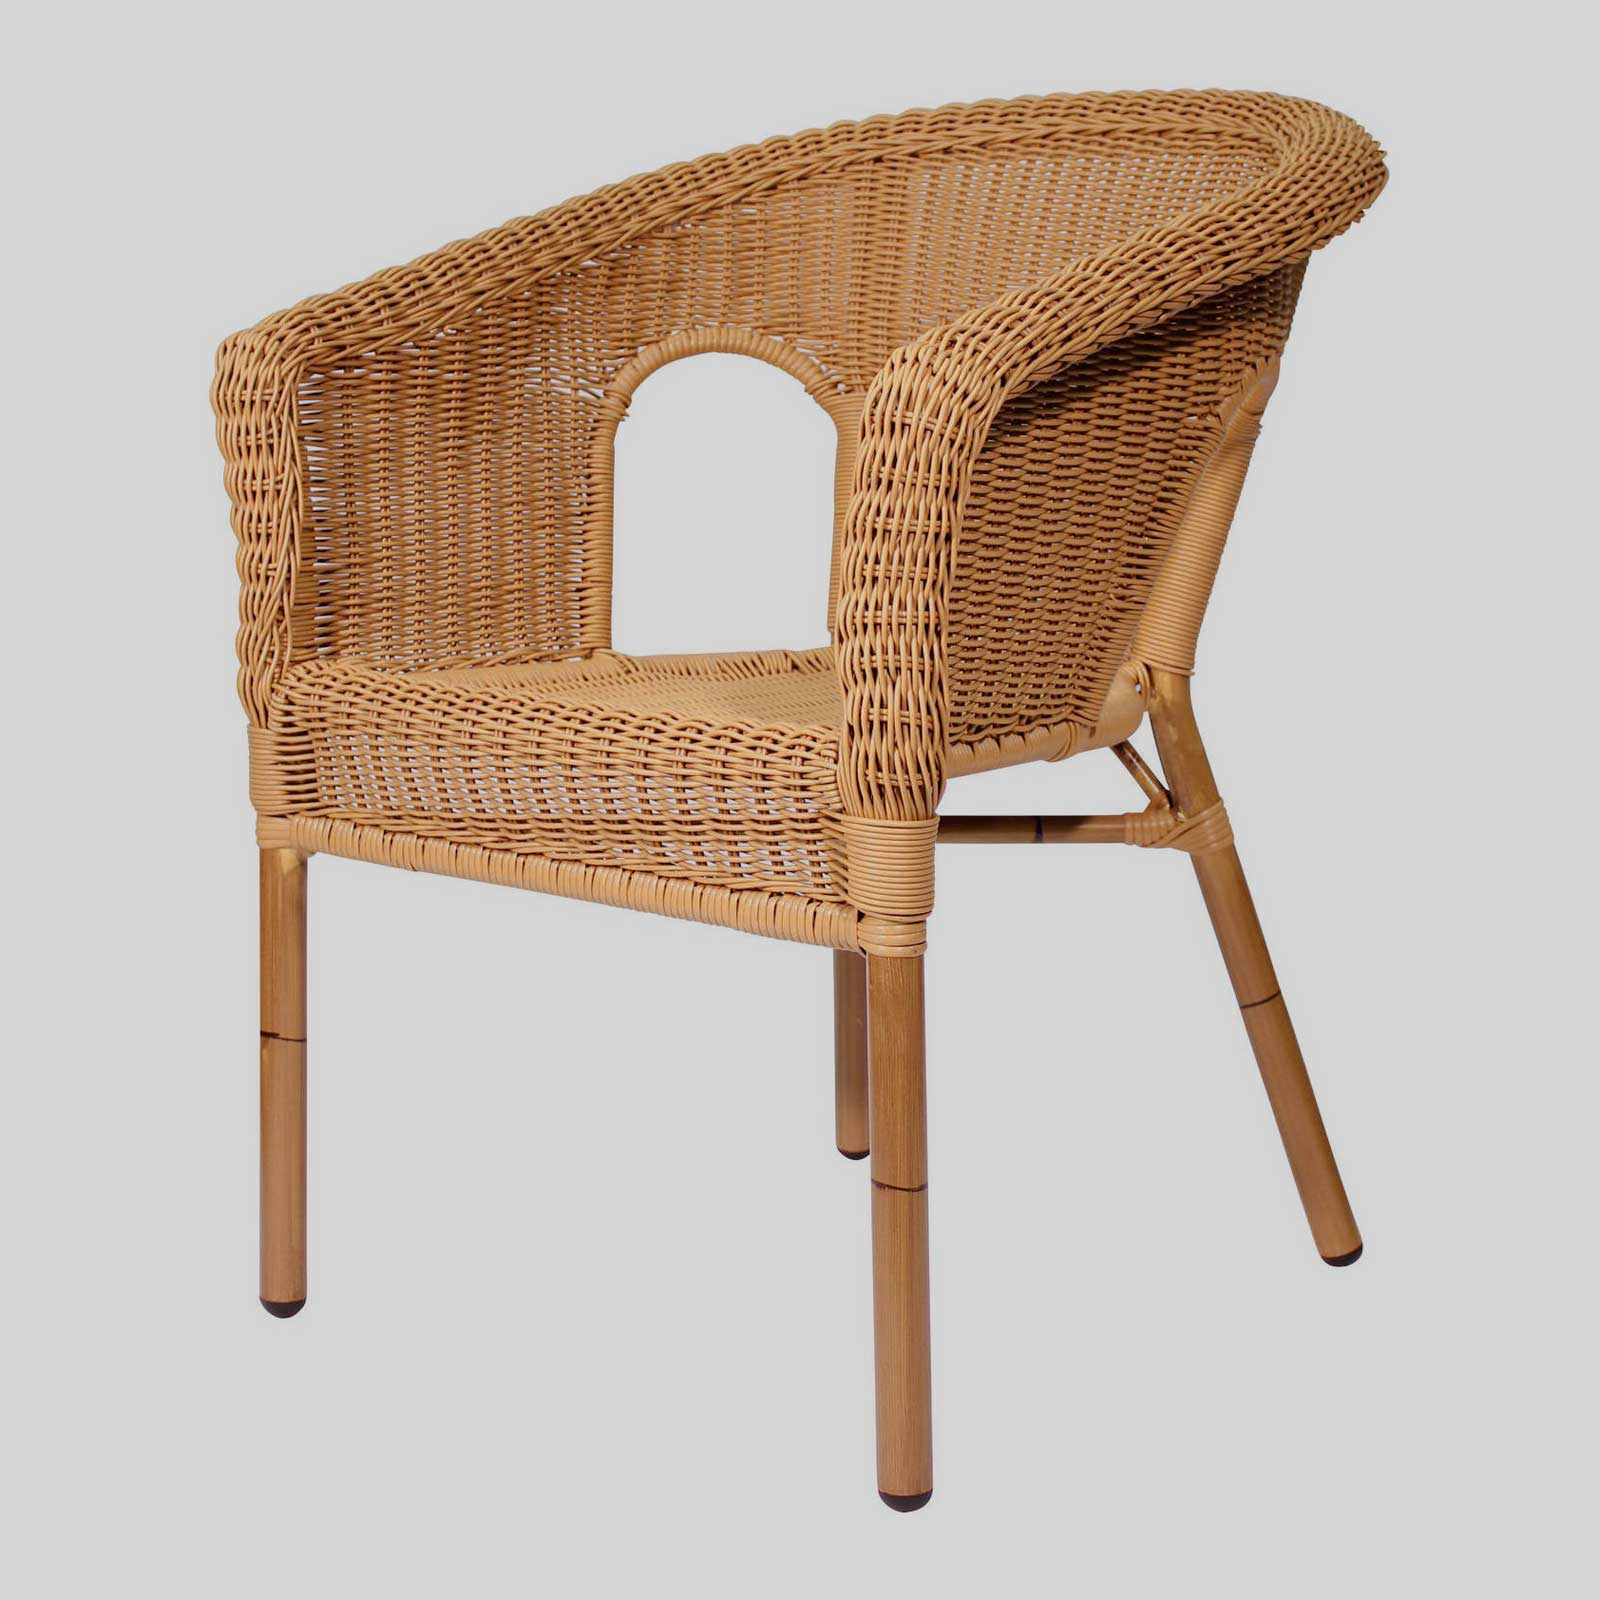 Outside Furniture Chairs Outdoor Wicker Chairs Brazil Concept Collections